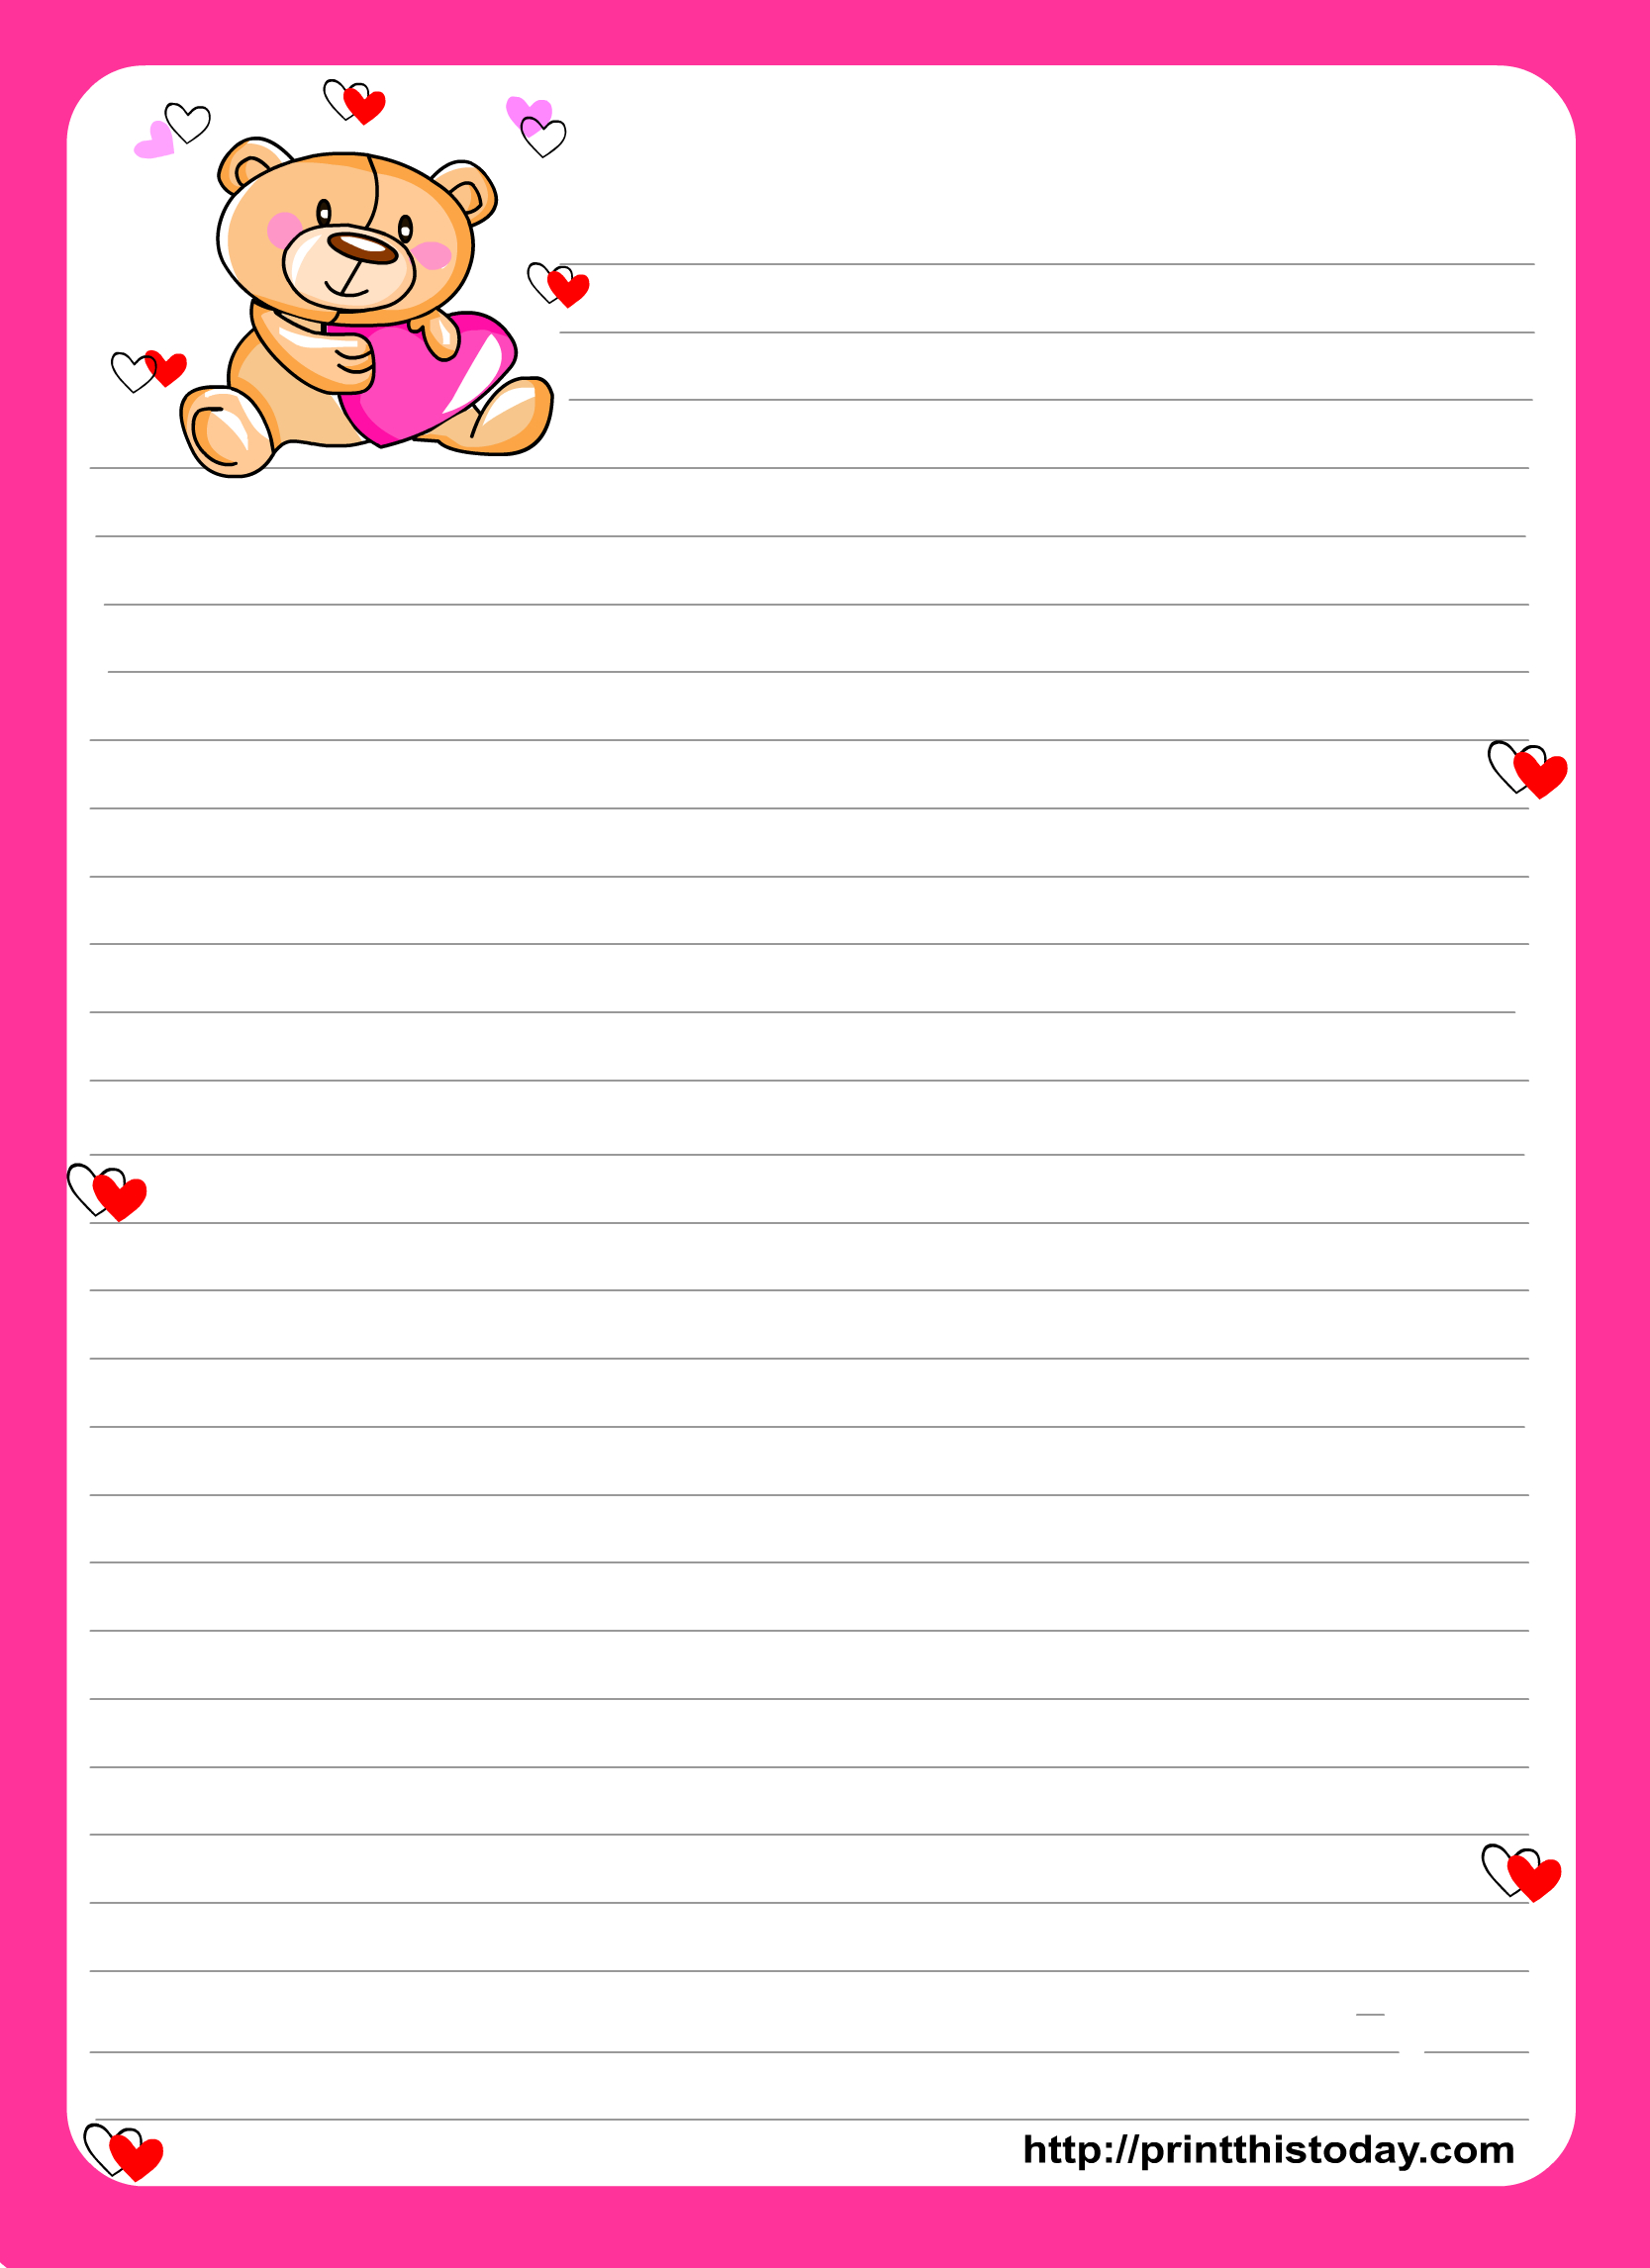 Printable Stationery Paper - Google Search | Stationery - Printables - Free Printable Stationery Writing Paper